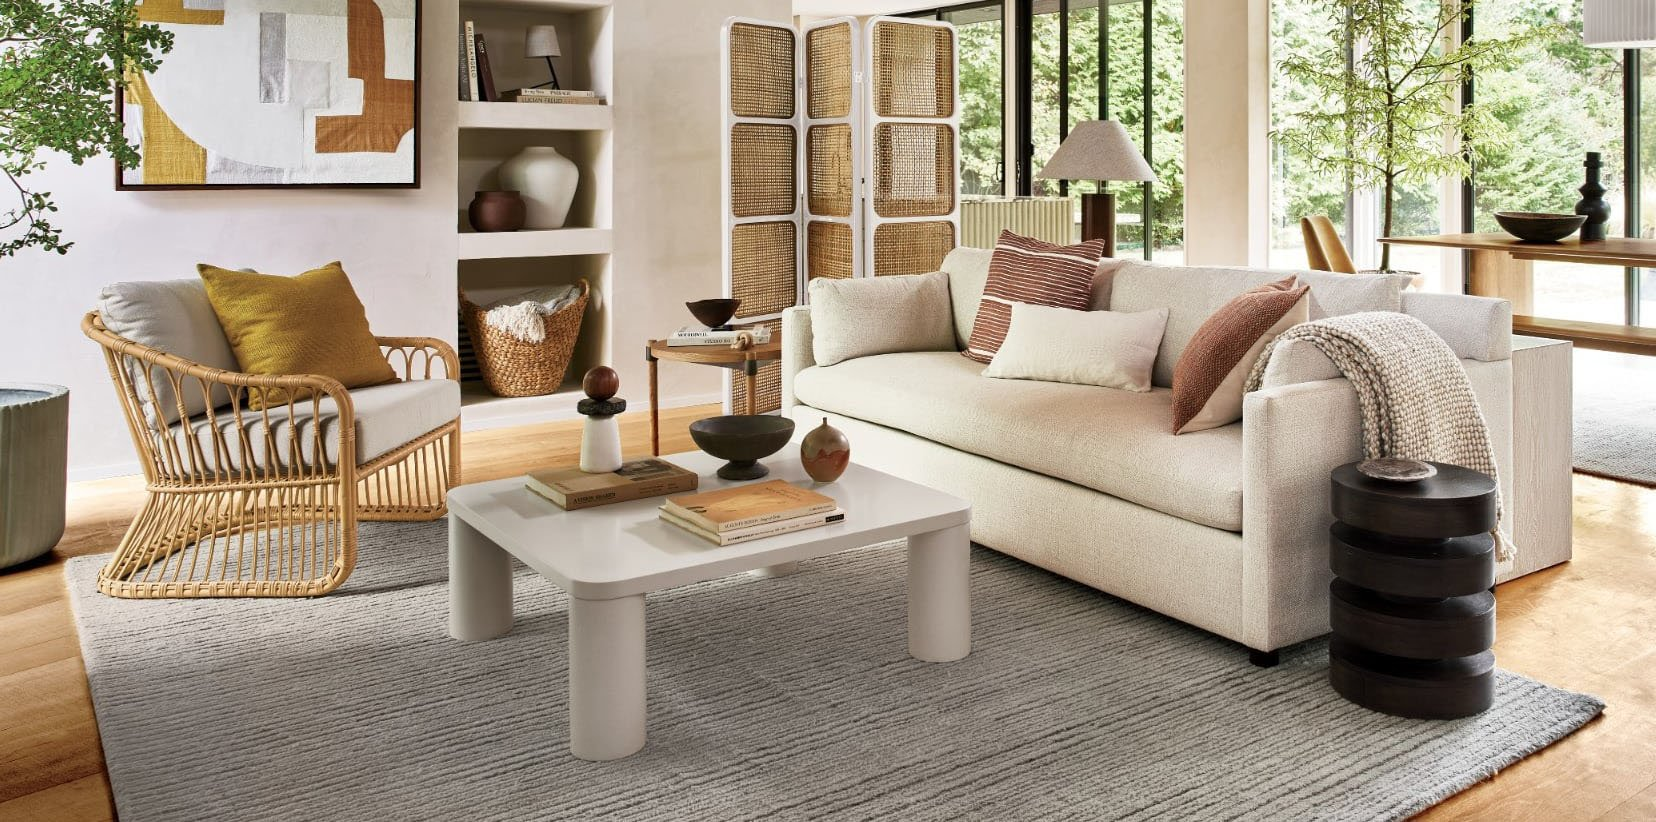 Who Has the Best Furniture Online?